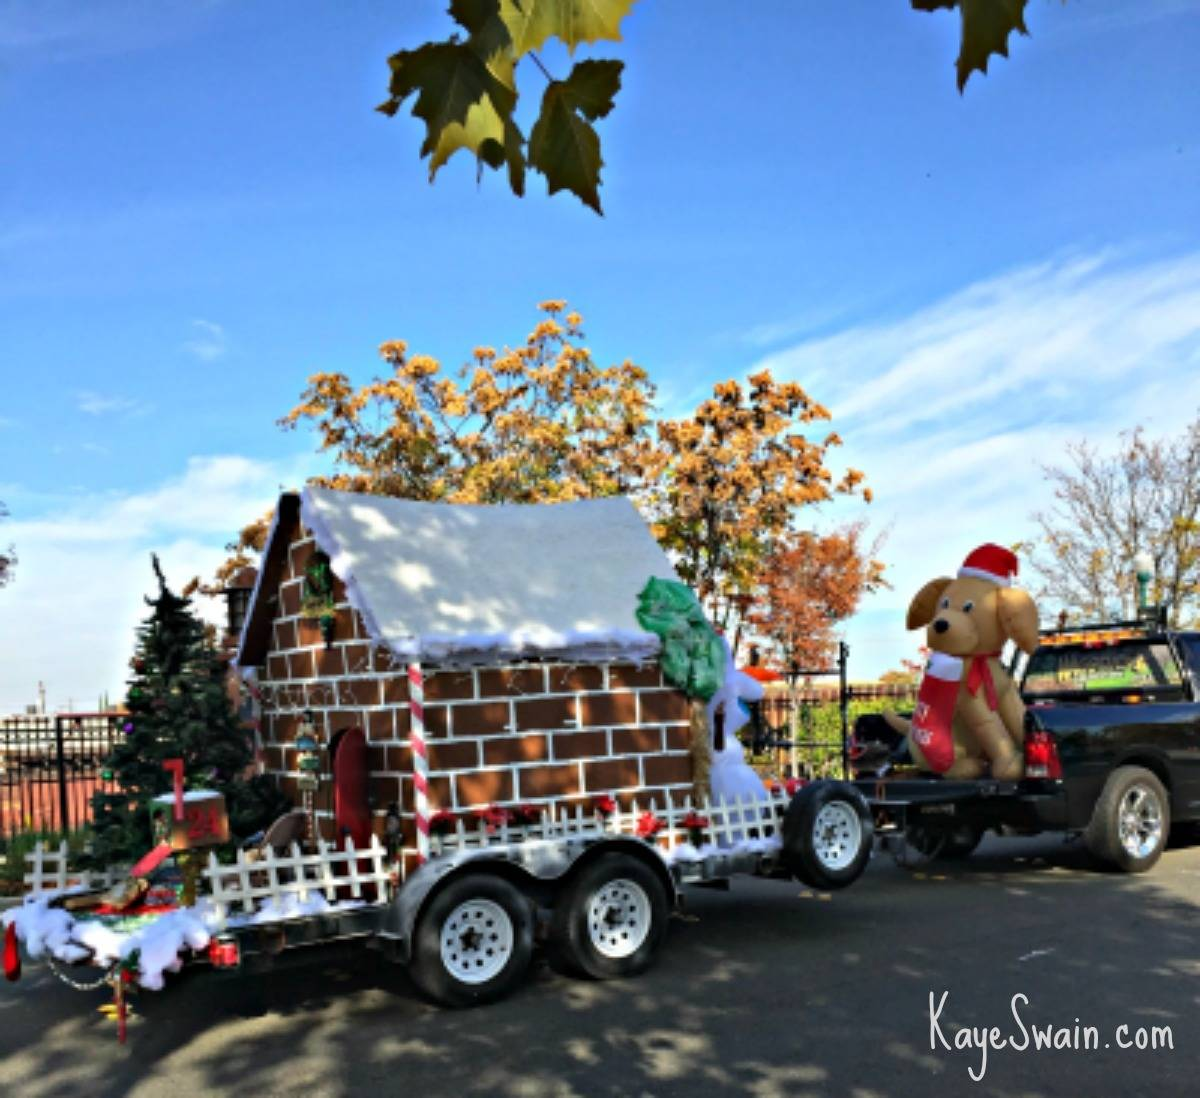 Roseville CA Christmas parade via Kaye Swain real estate agent cute float 1200